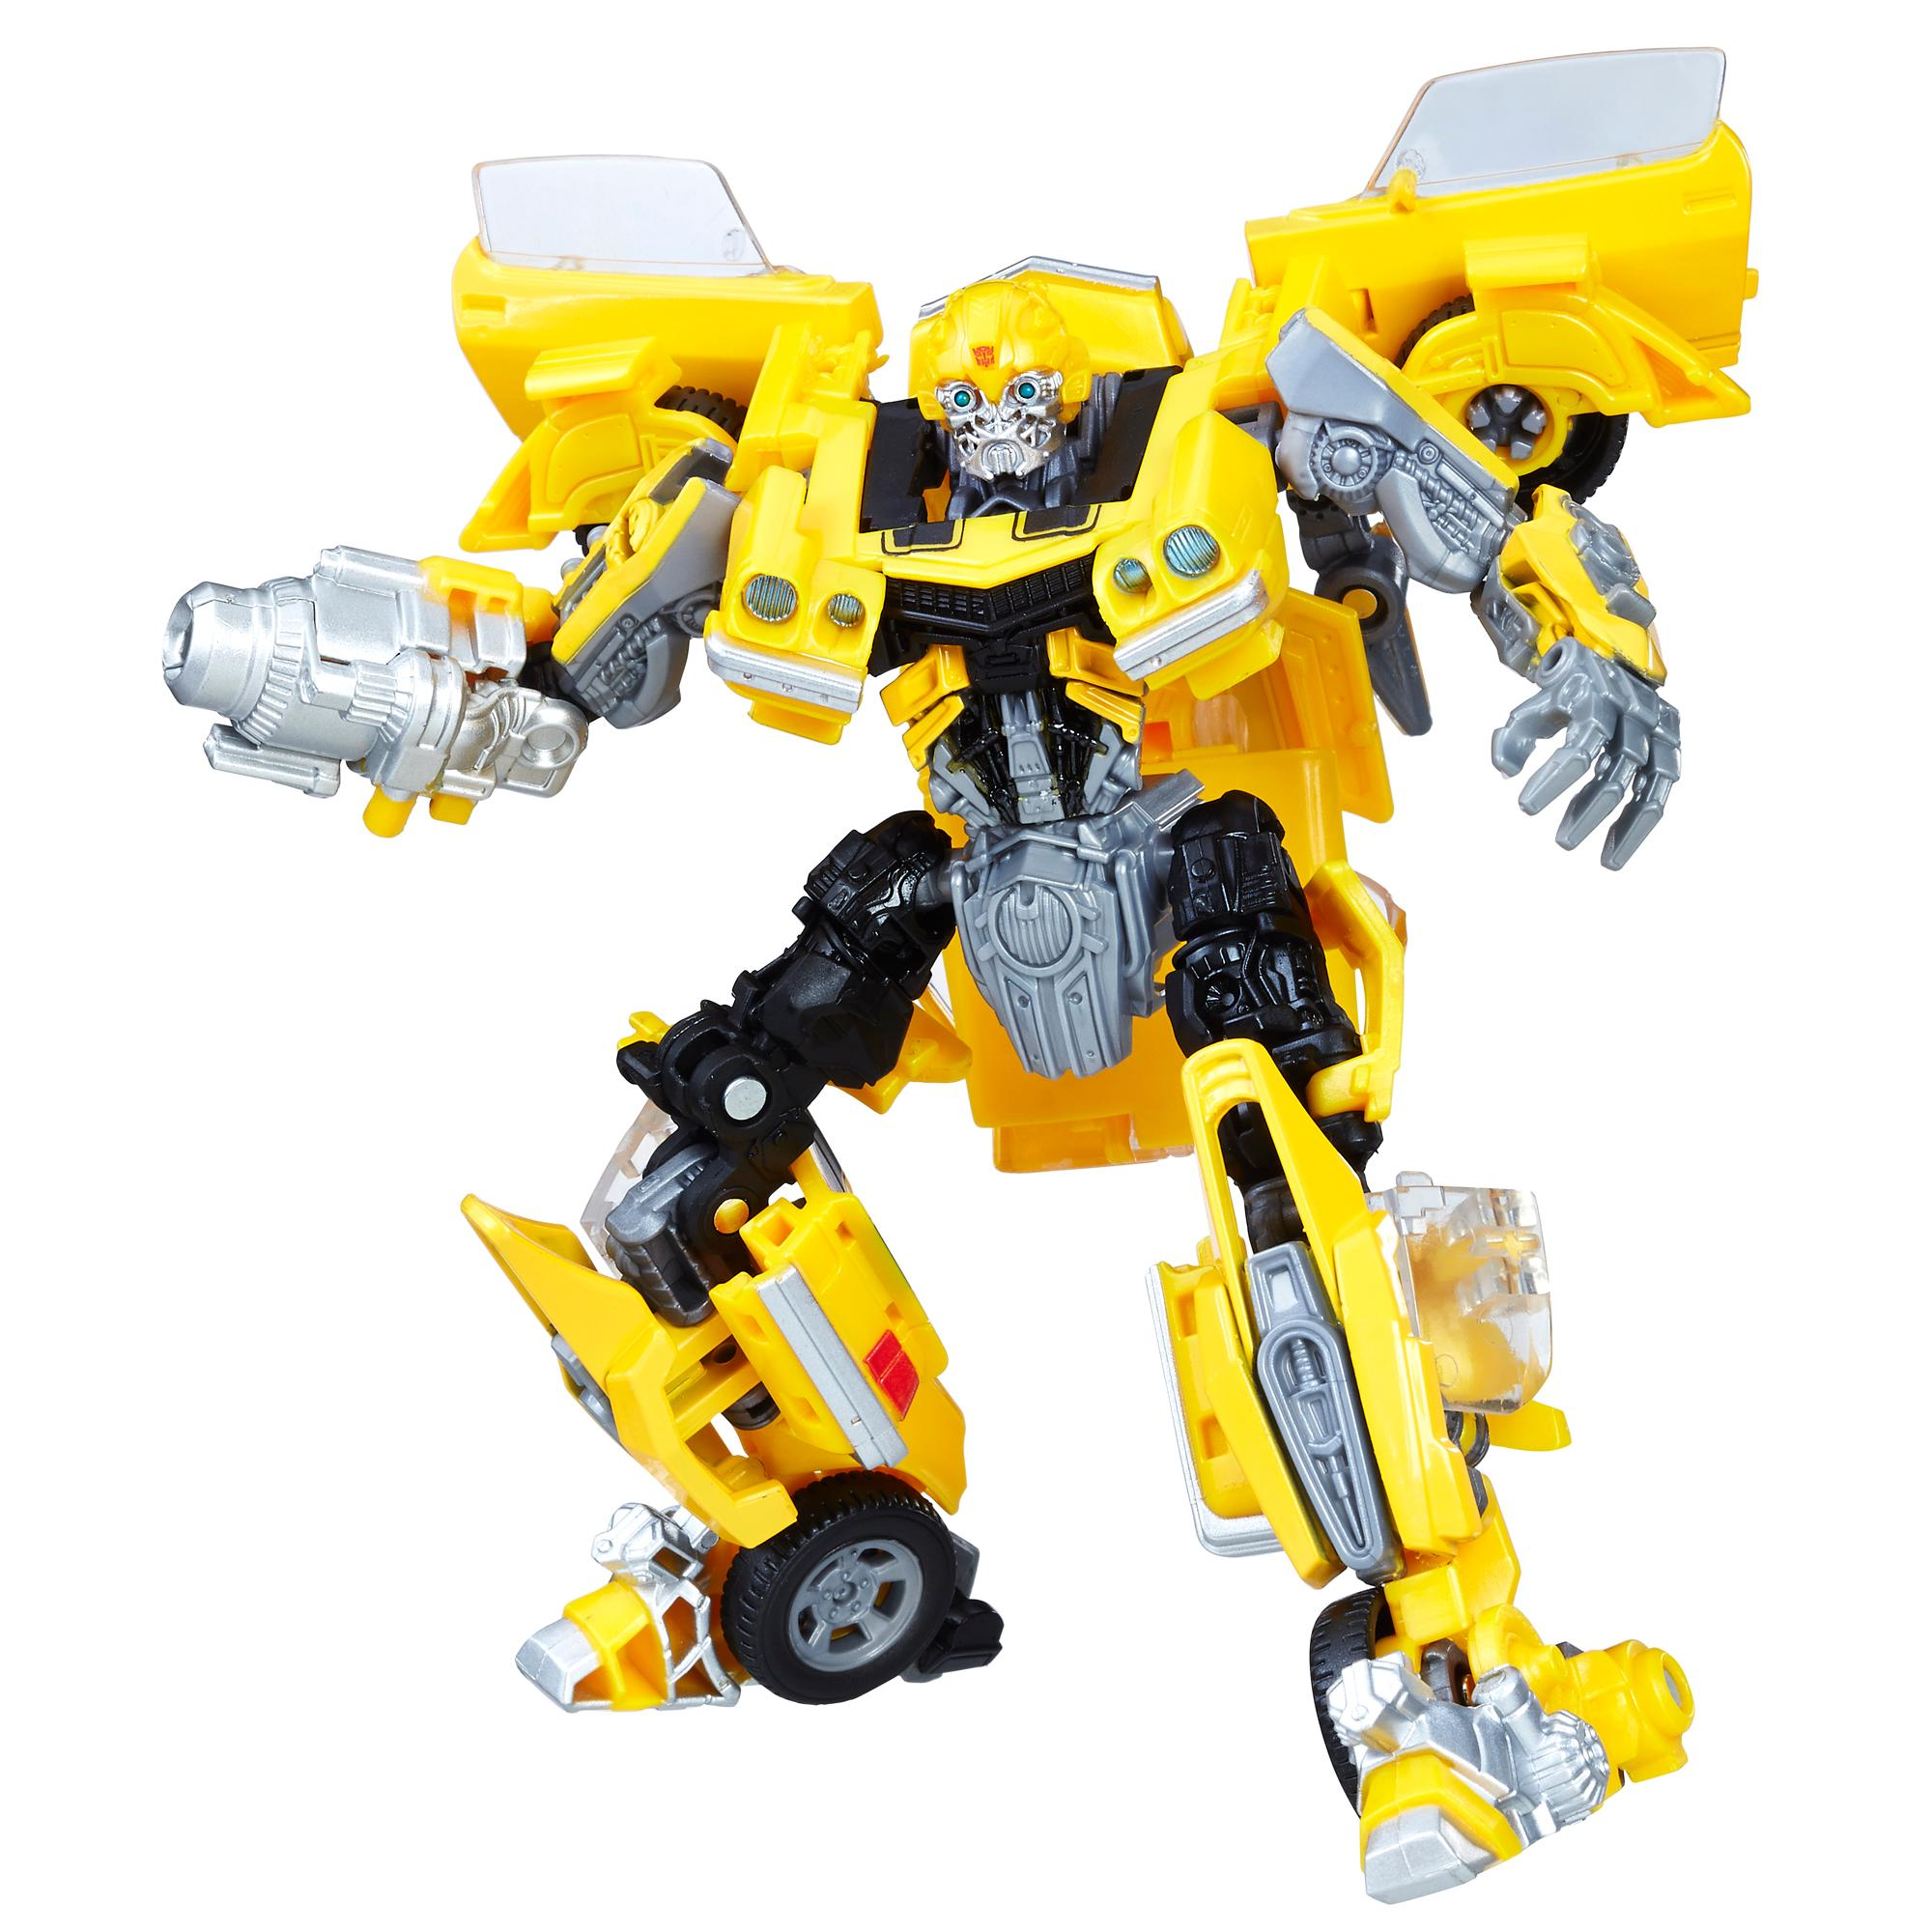 Transformers Studio Series 01 - Bumblebee classe deluxe do filme 1